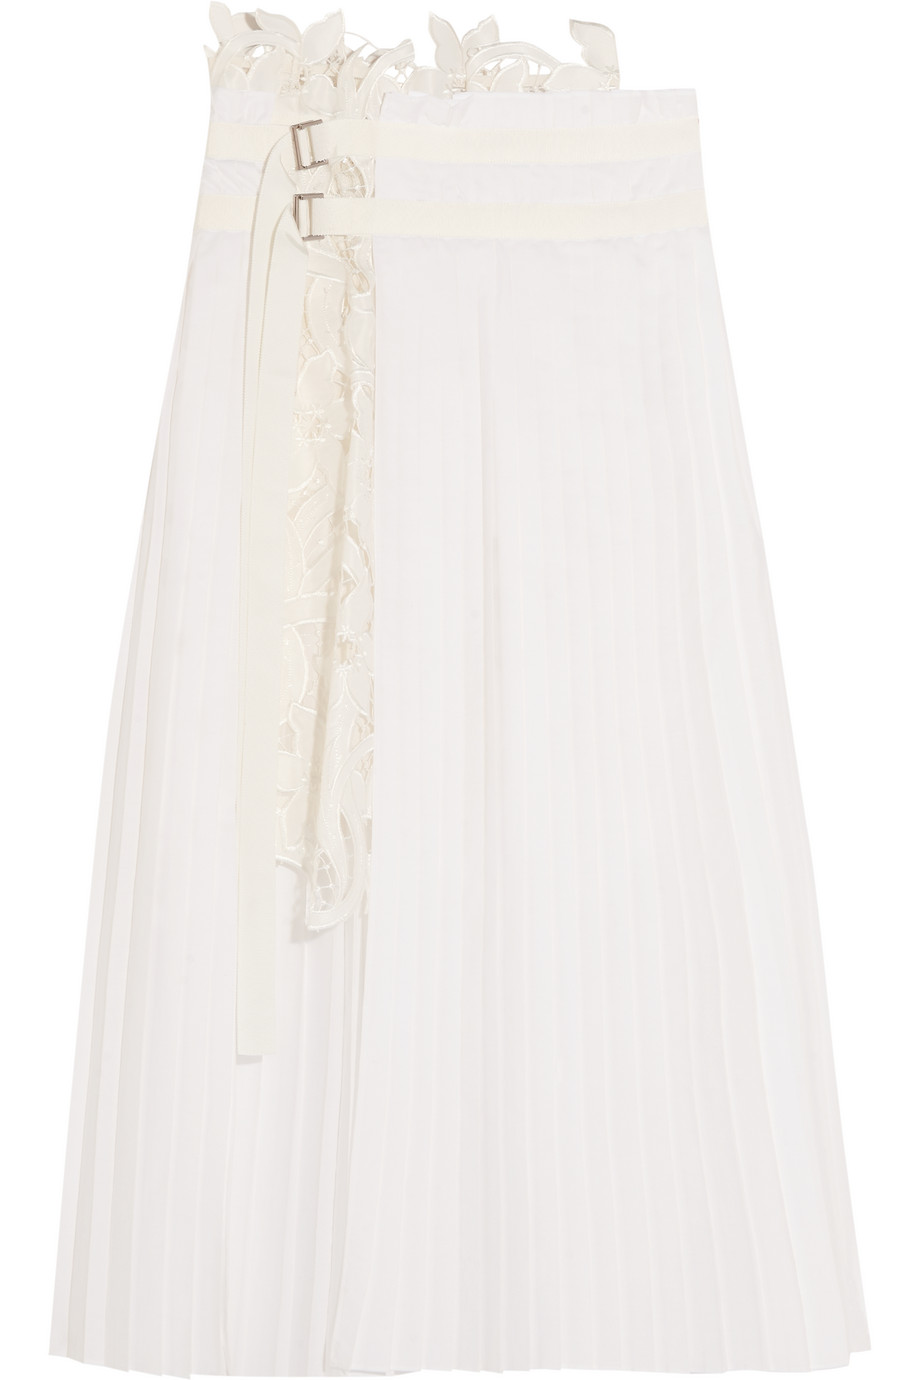 Sacai Pleated Poplin and Broderie Anglaise Satin Skirt, Off-White, Women's, Size: 3